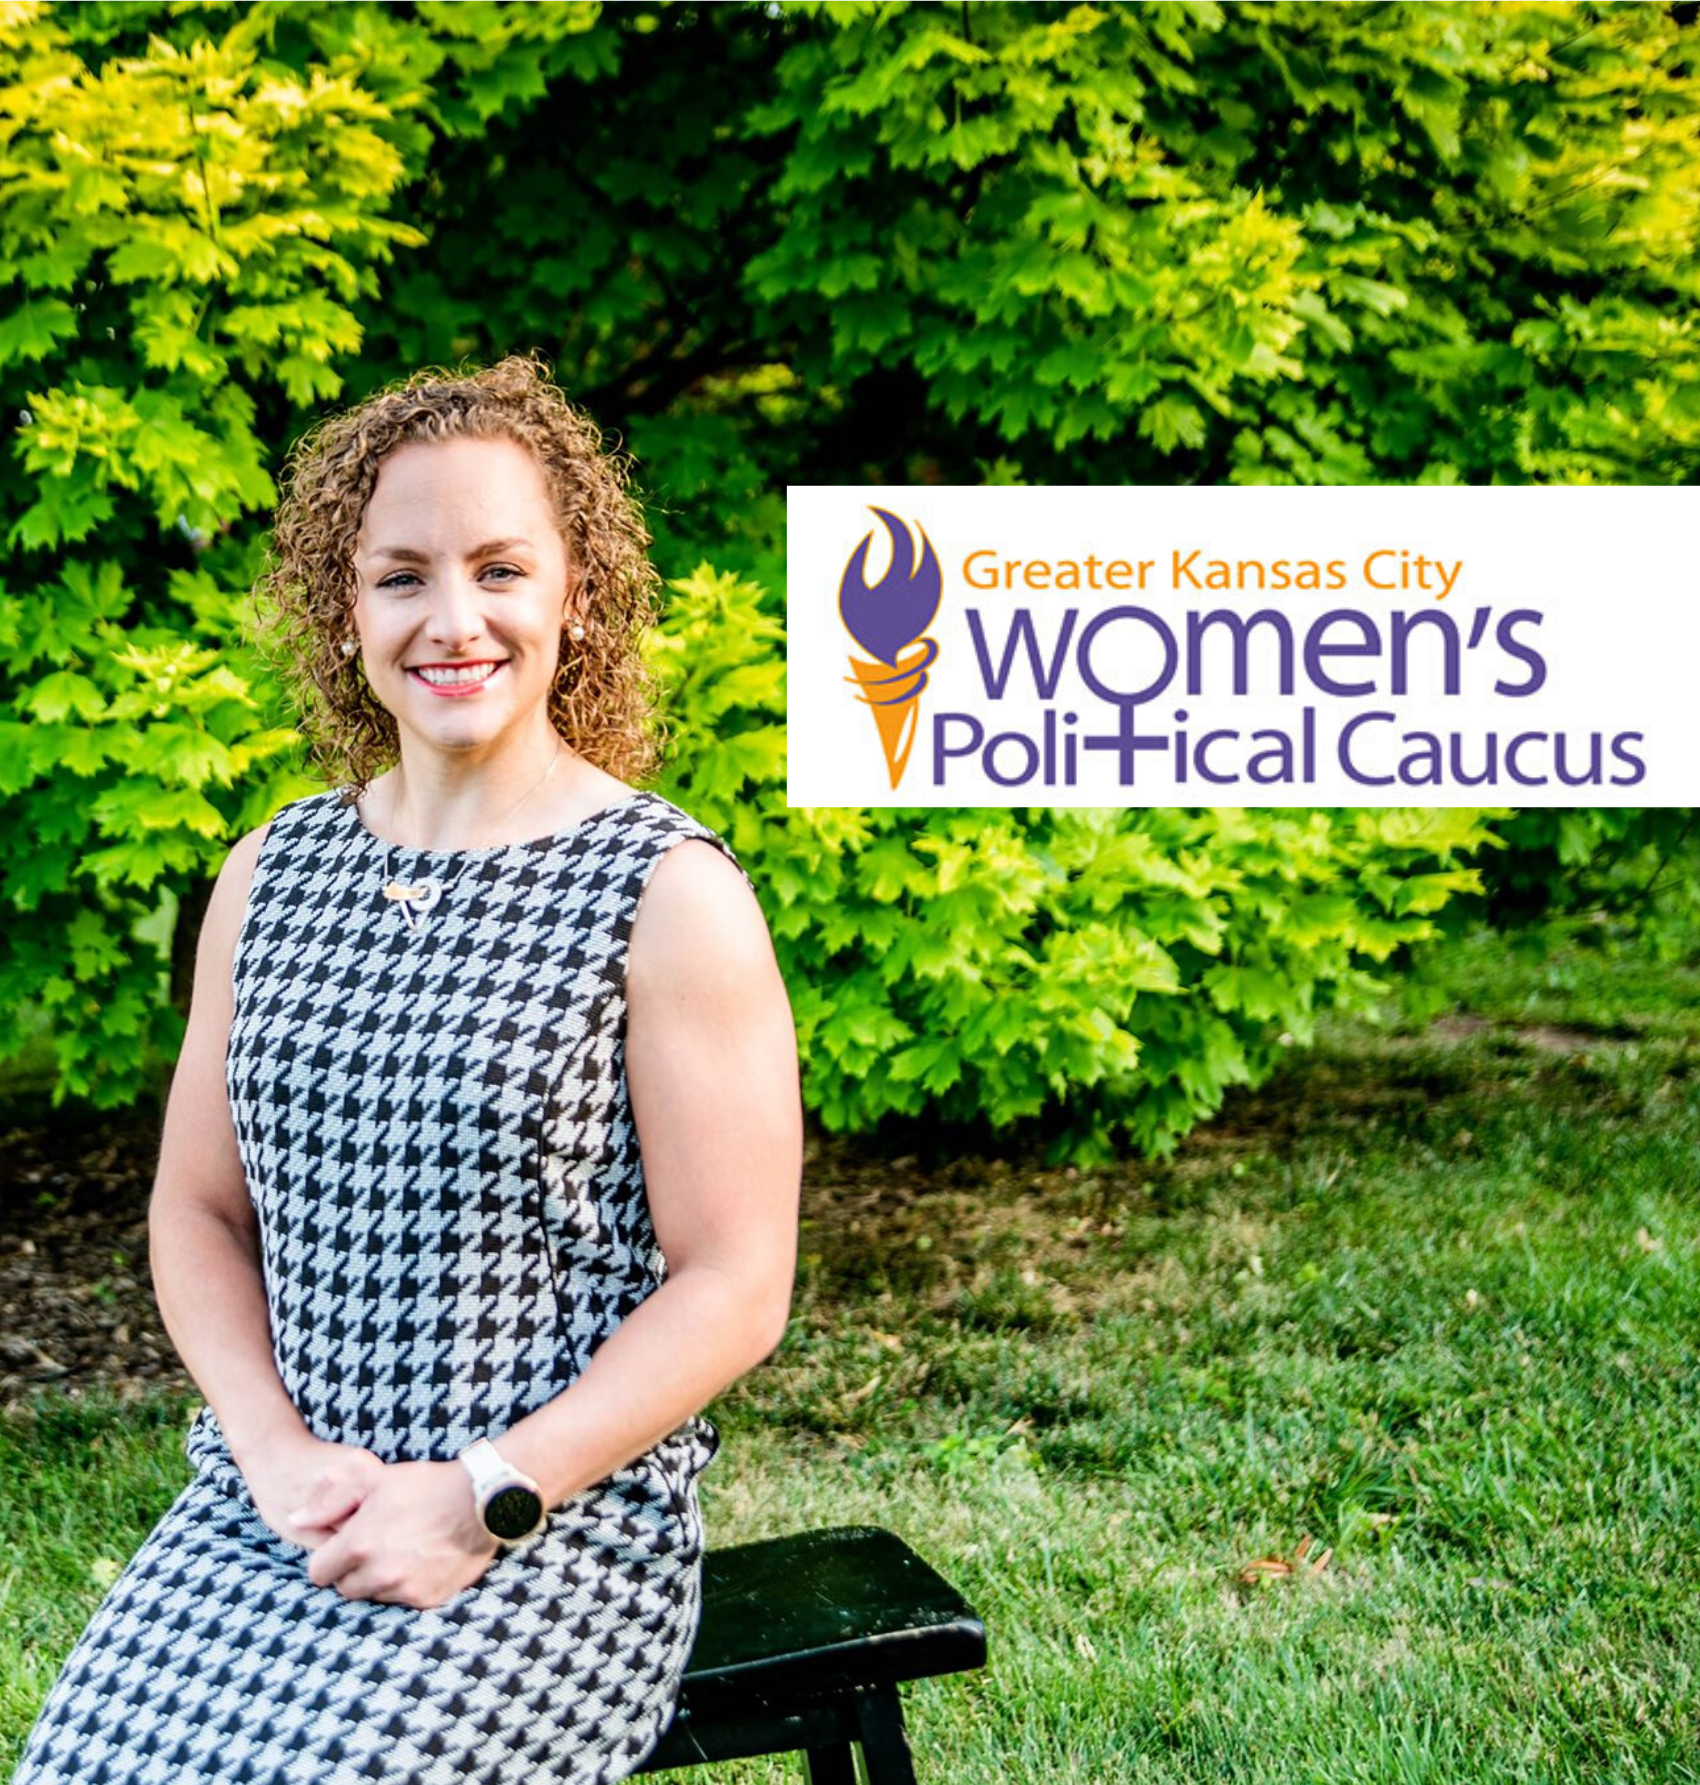 Endorsed By Greater Kansas City Women's Political Caucus